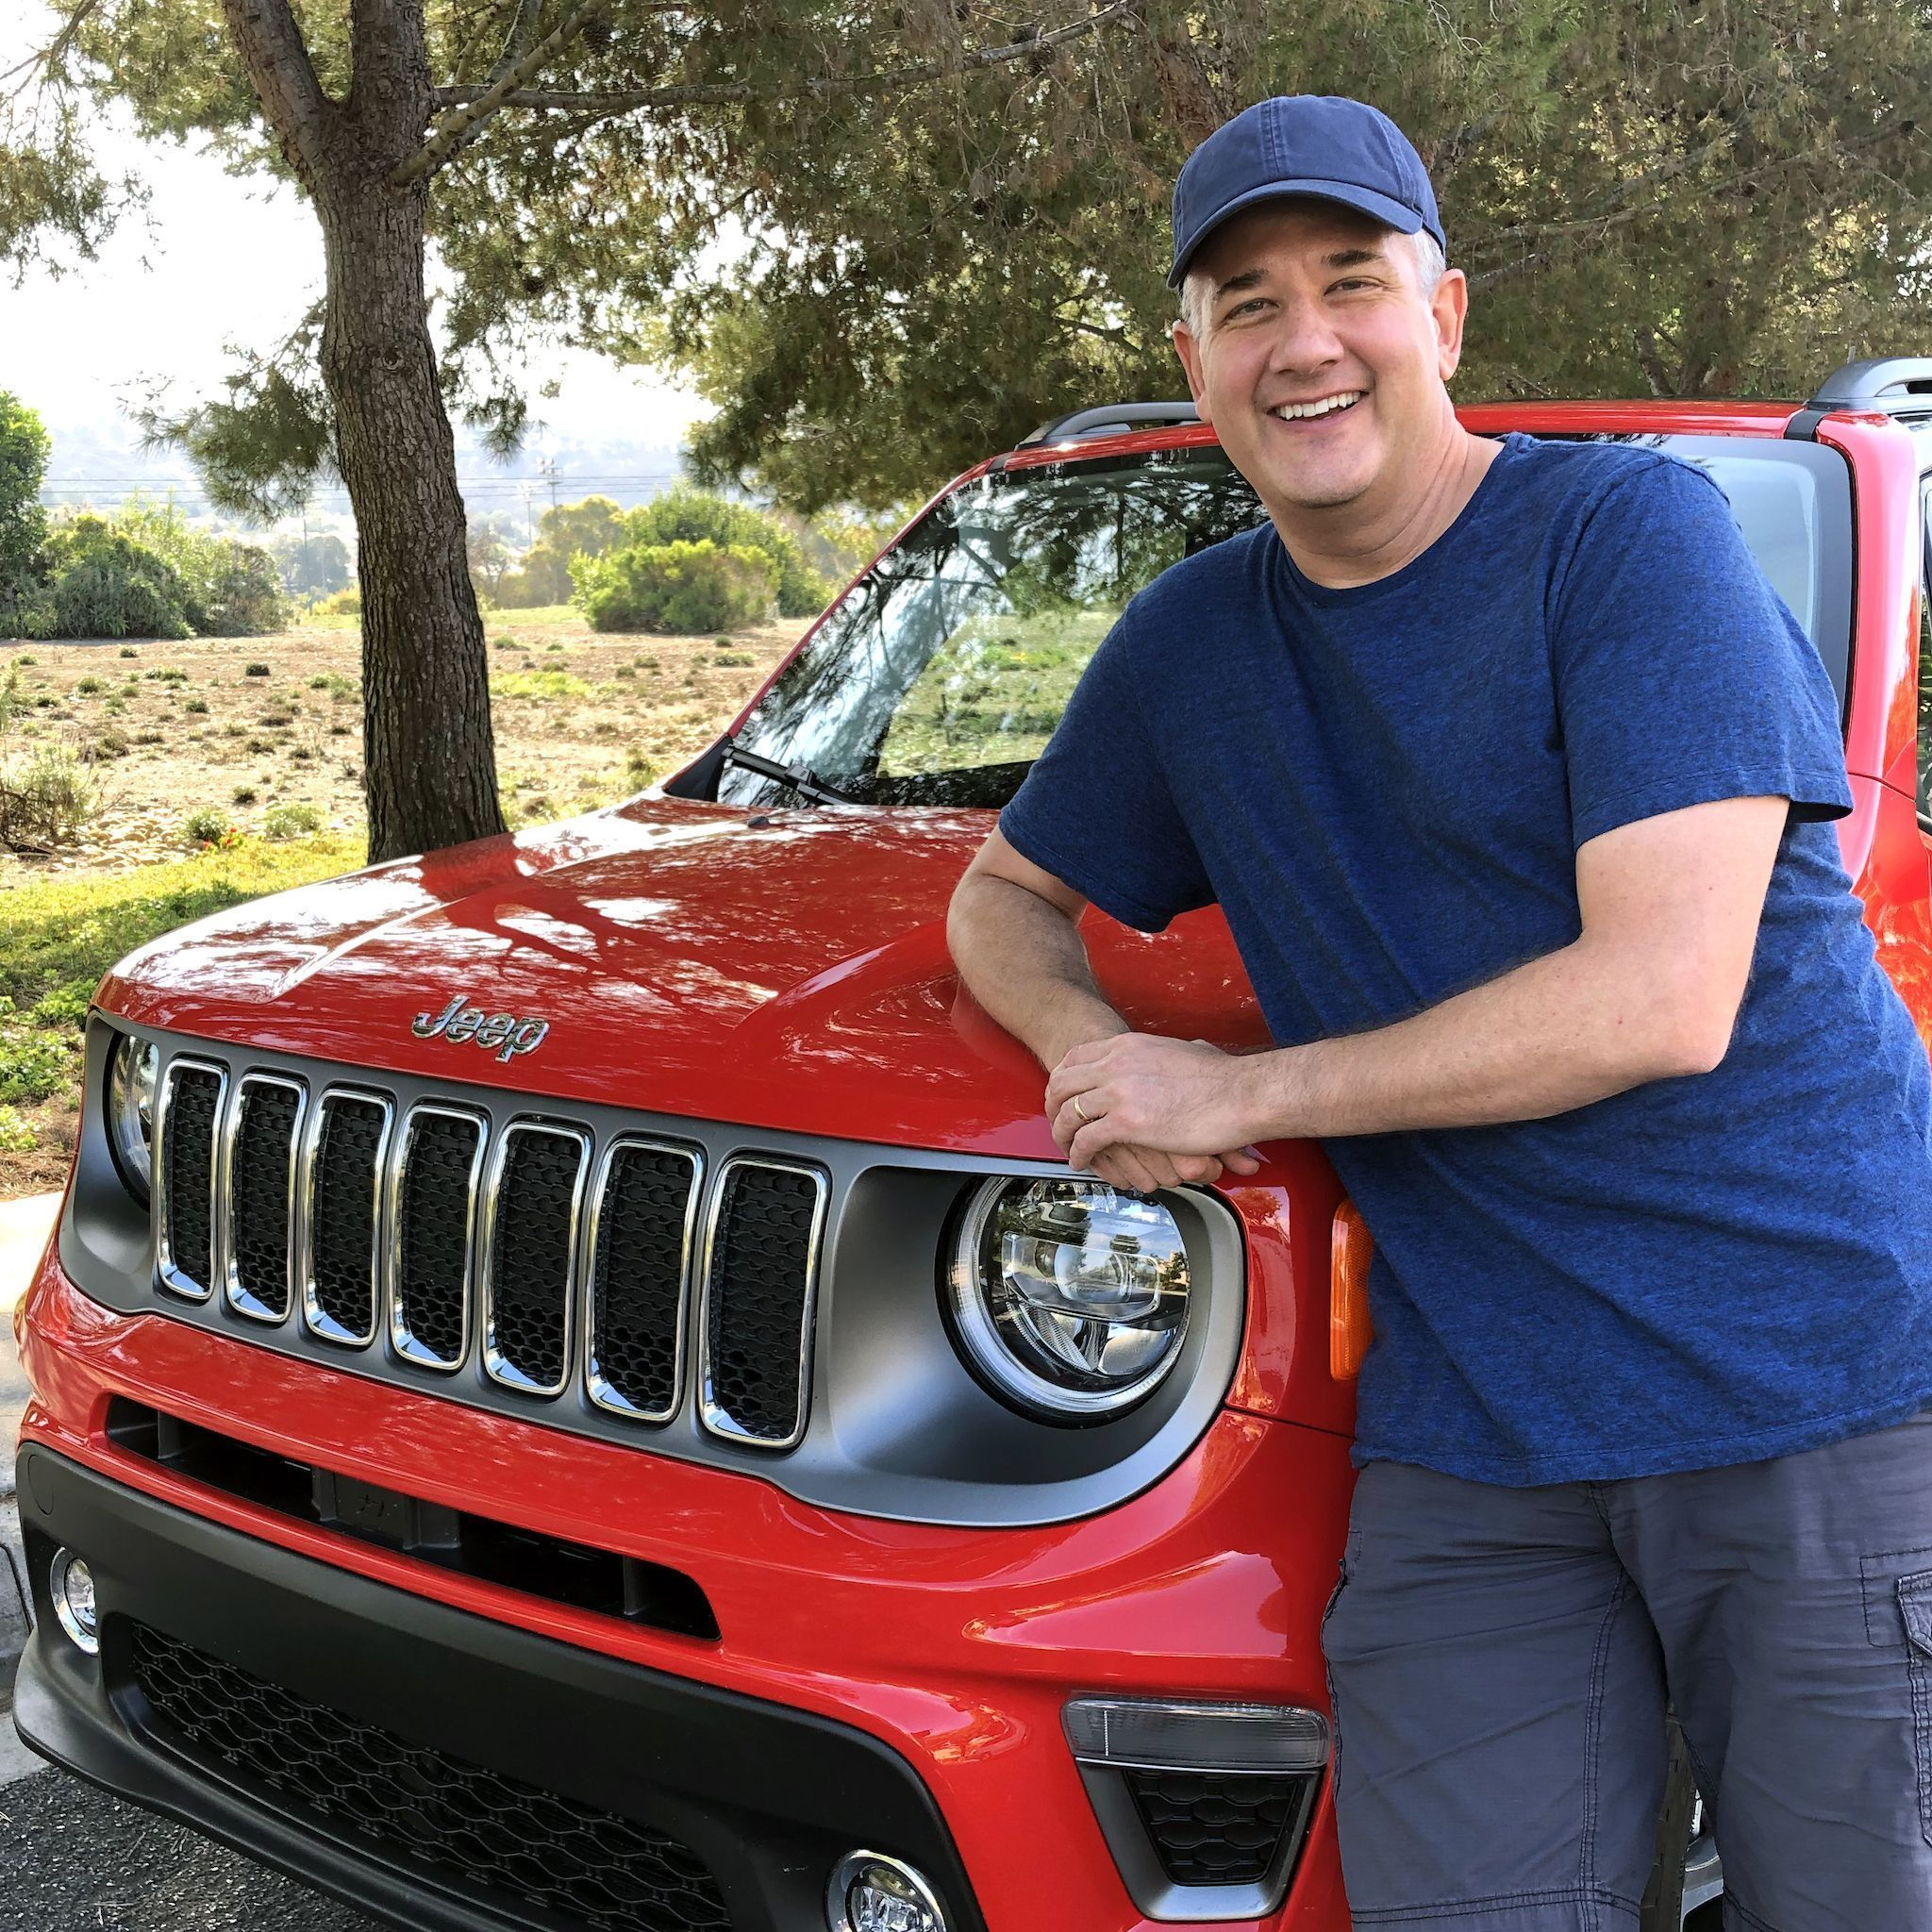 The Jig Is Up The News Is Out Jeep Dropped Off A Brand Spankin New 33k Renegade Limited 4x4 Suv For Me To Play With For A Jeep Renegade Jeep Renegade